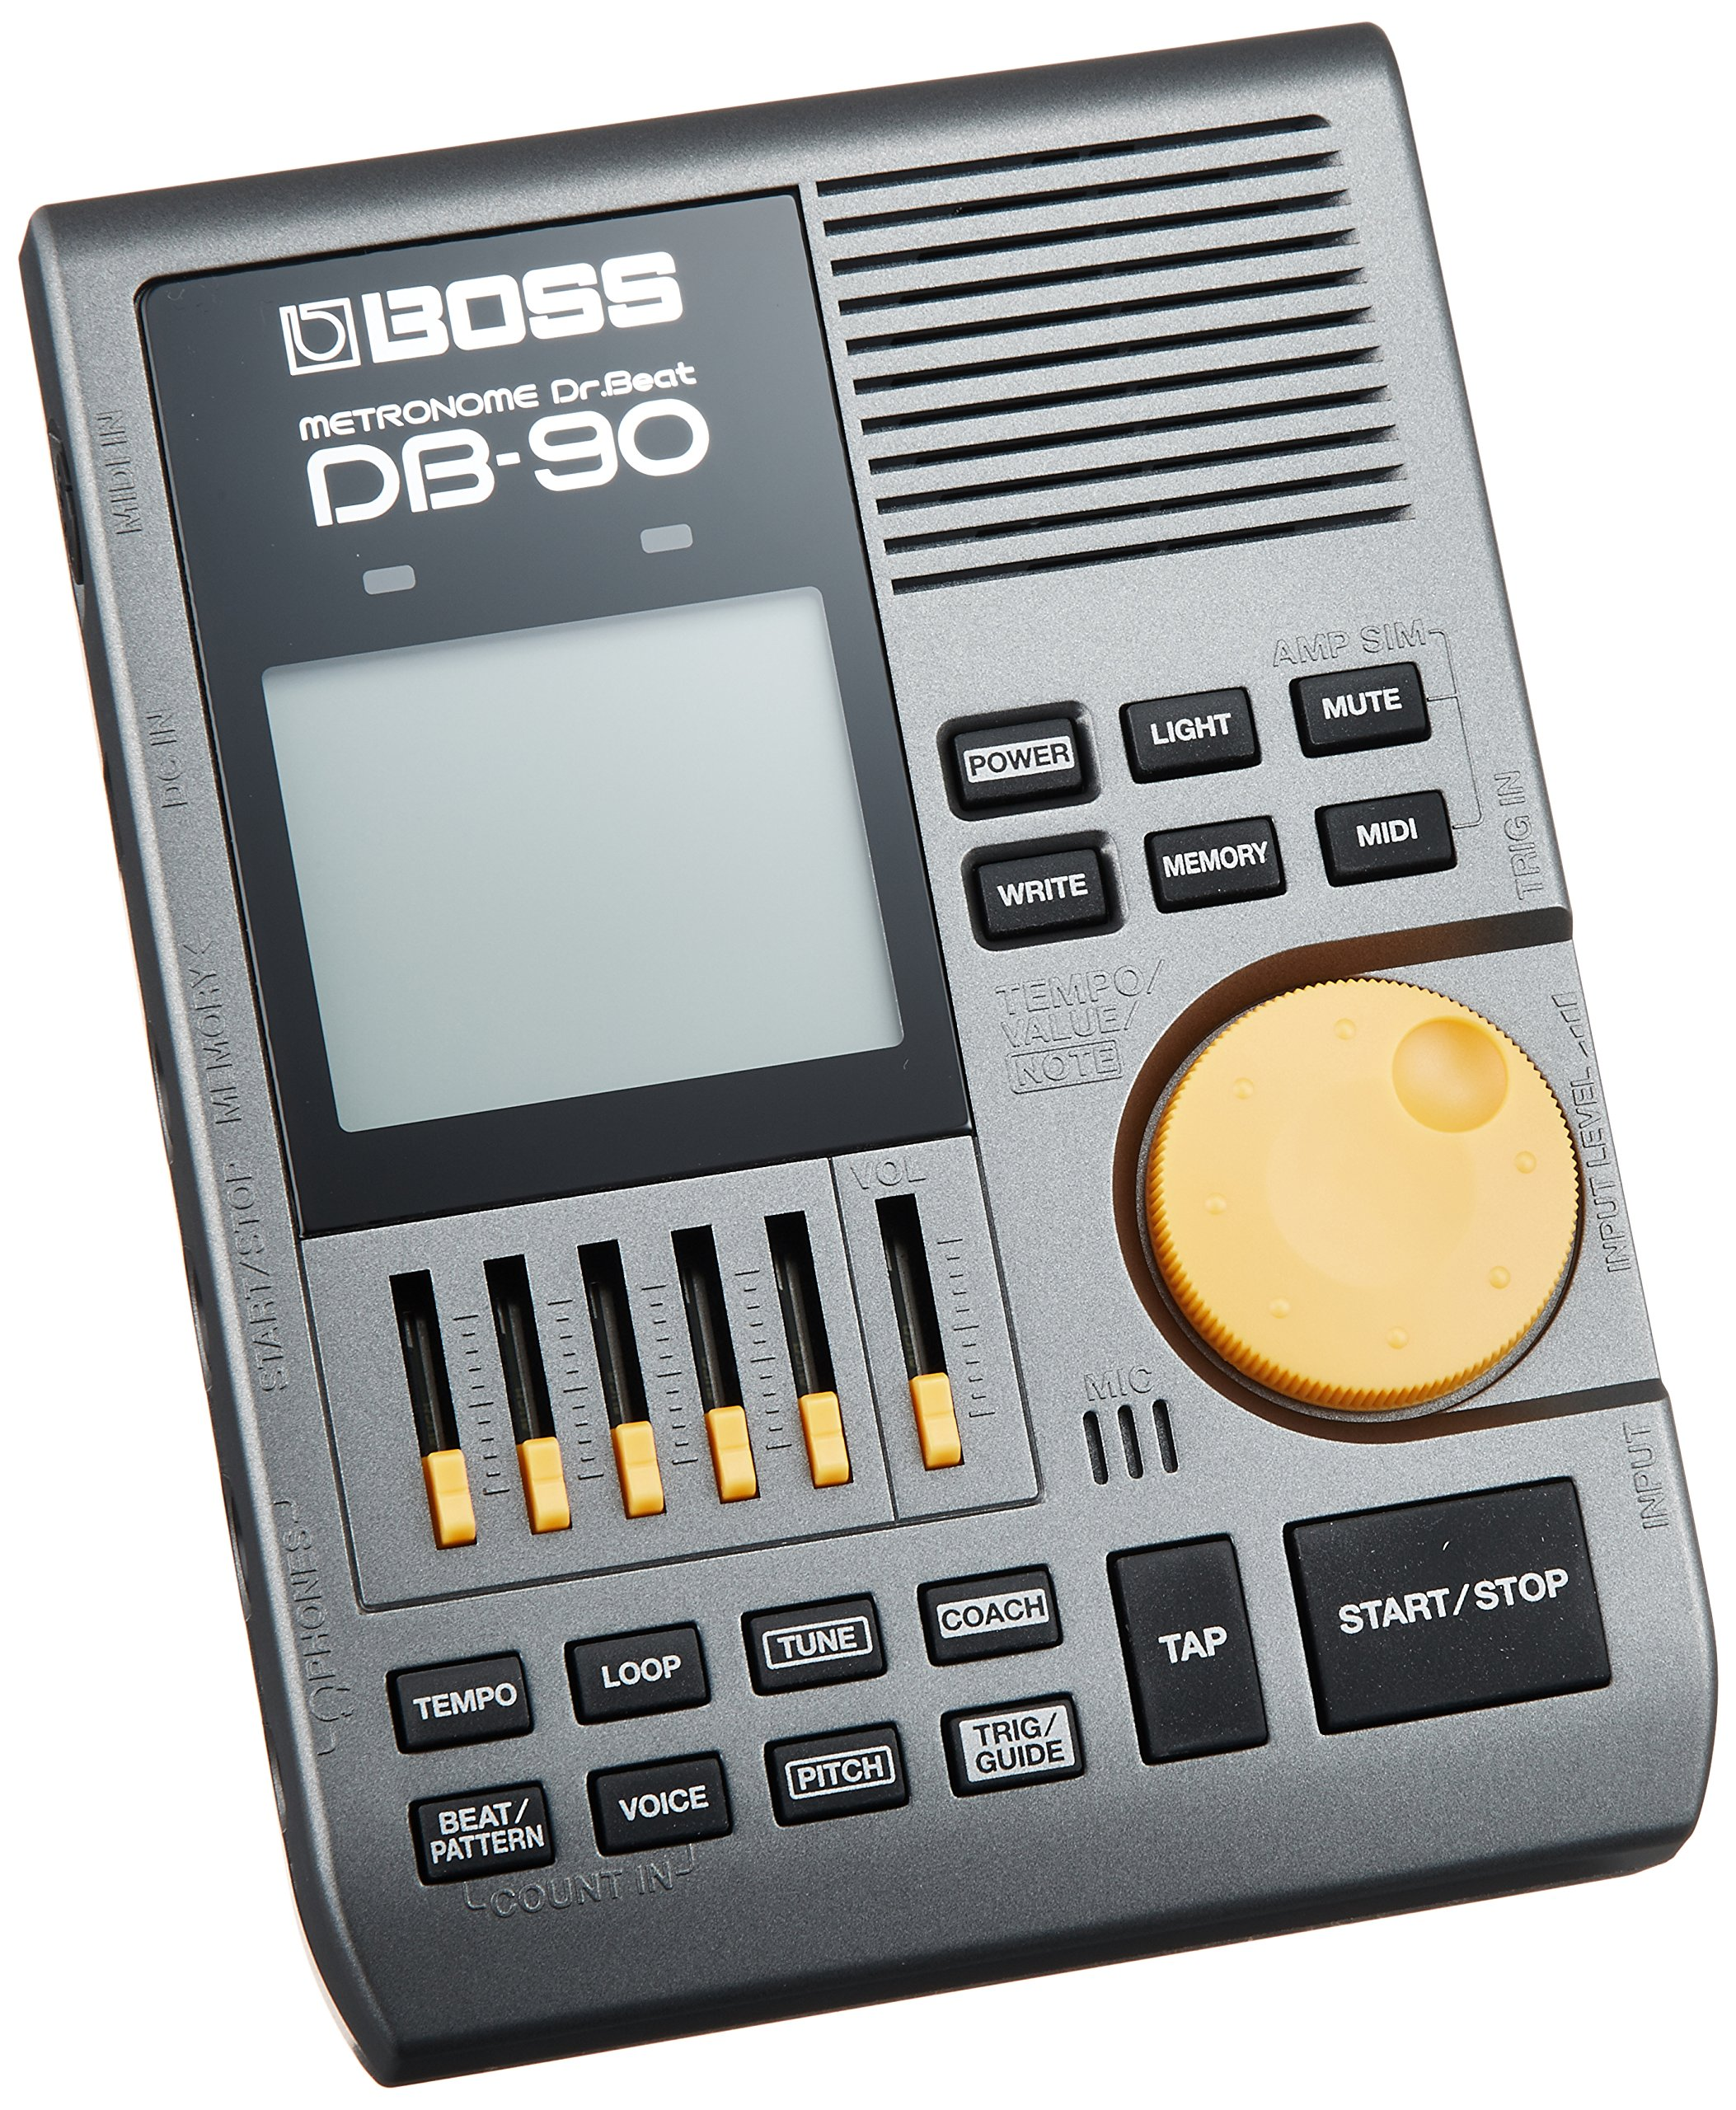 BOSS DB-90 Metronome by BOSS